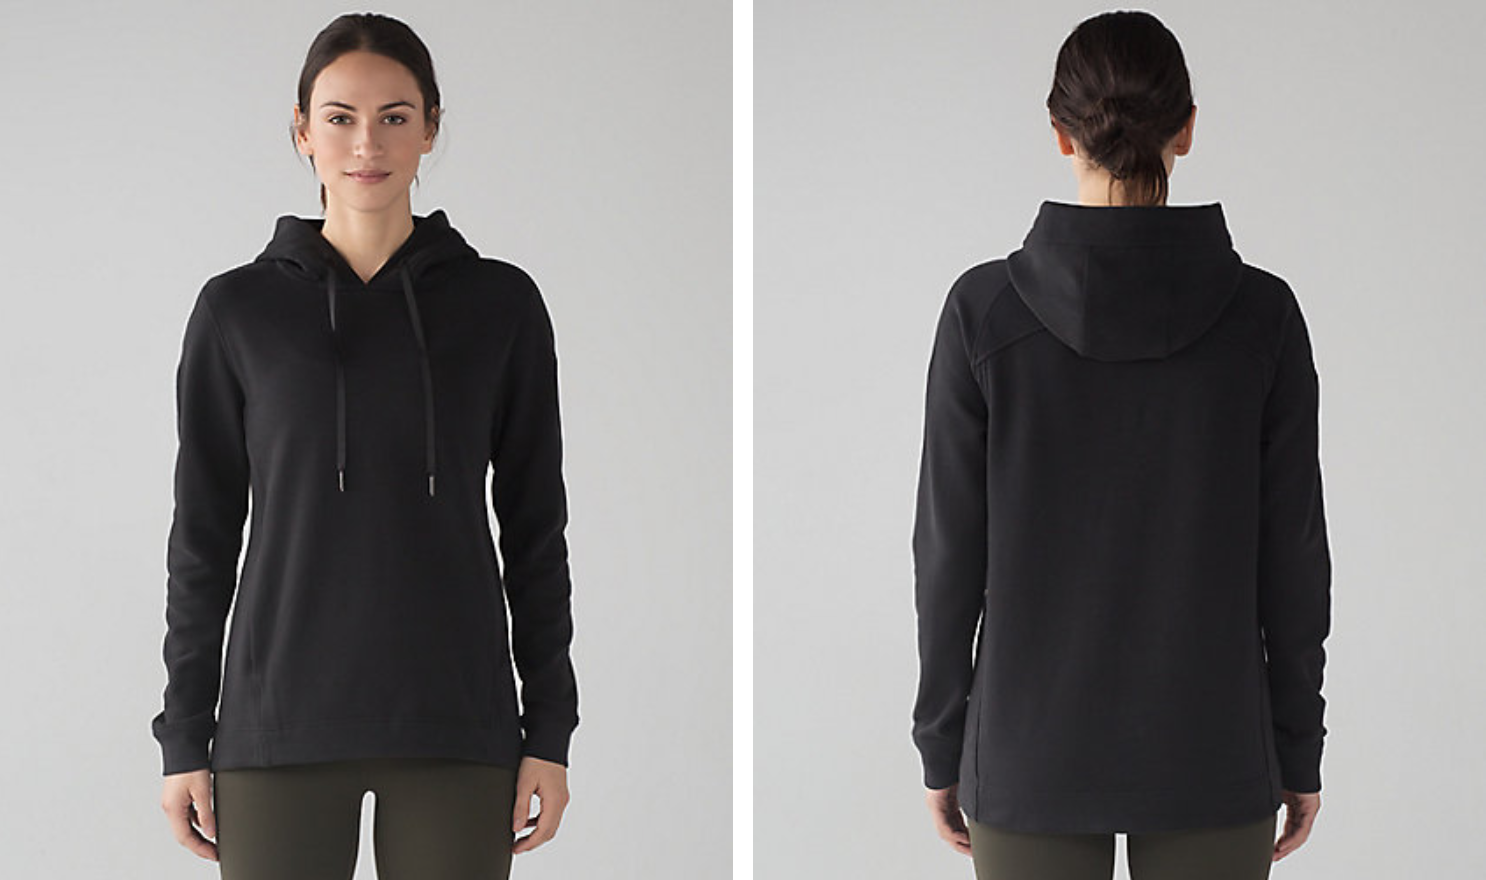 https://api.shopstyle.com/action/apiVisitRetailer?url=https%3A%2F%2Fshop.lululemon.com%2Fp%2Ftops-long-sleeve%2FWind-Down-Pullover%2F_%2Fprod8431391%3Frcnt%3D6%26N%3D1z13ziiZ7z5%26cnt%3D58%26color%3DLW3ANBS_014899&site=www.shopstyle.ca&pid=uid6784-25288972-7